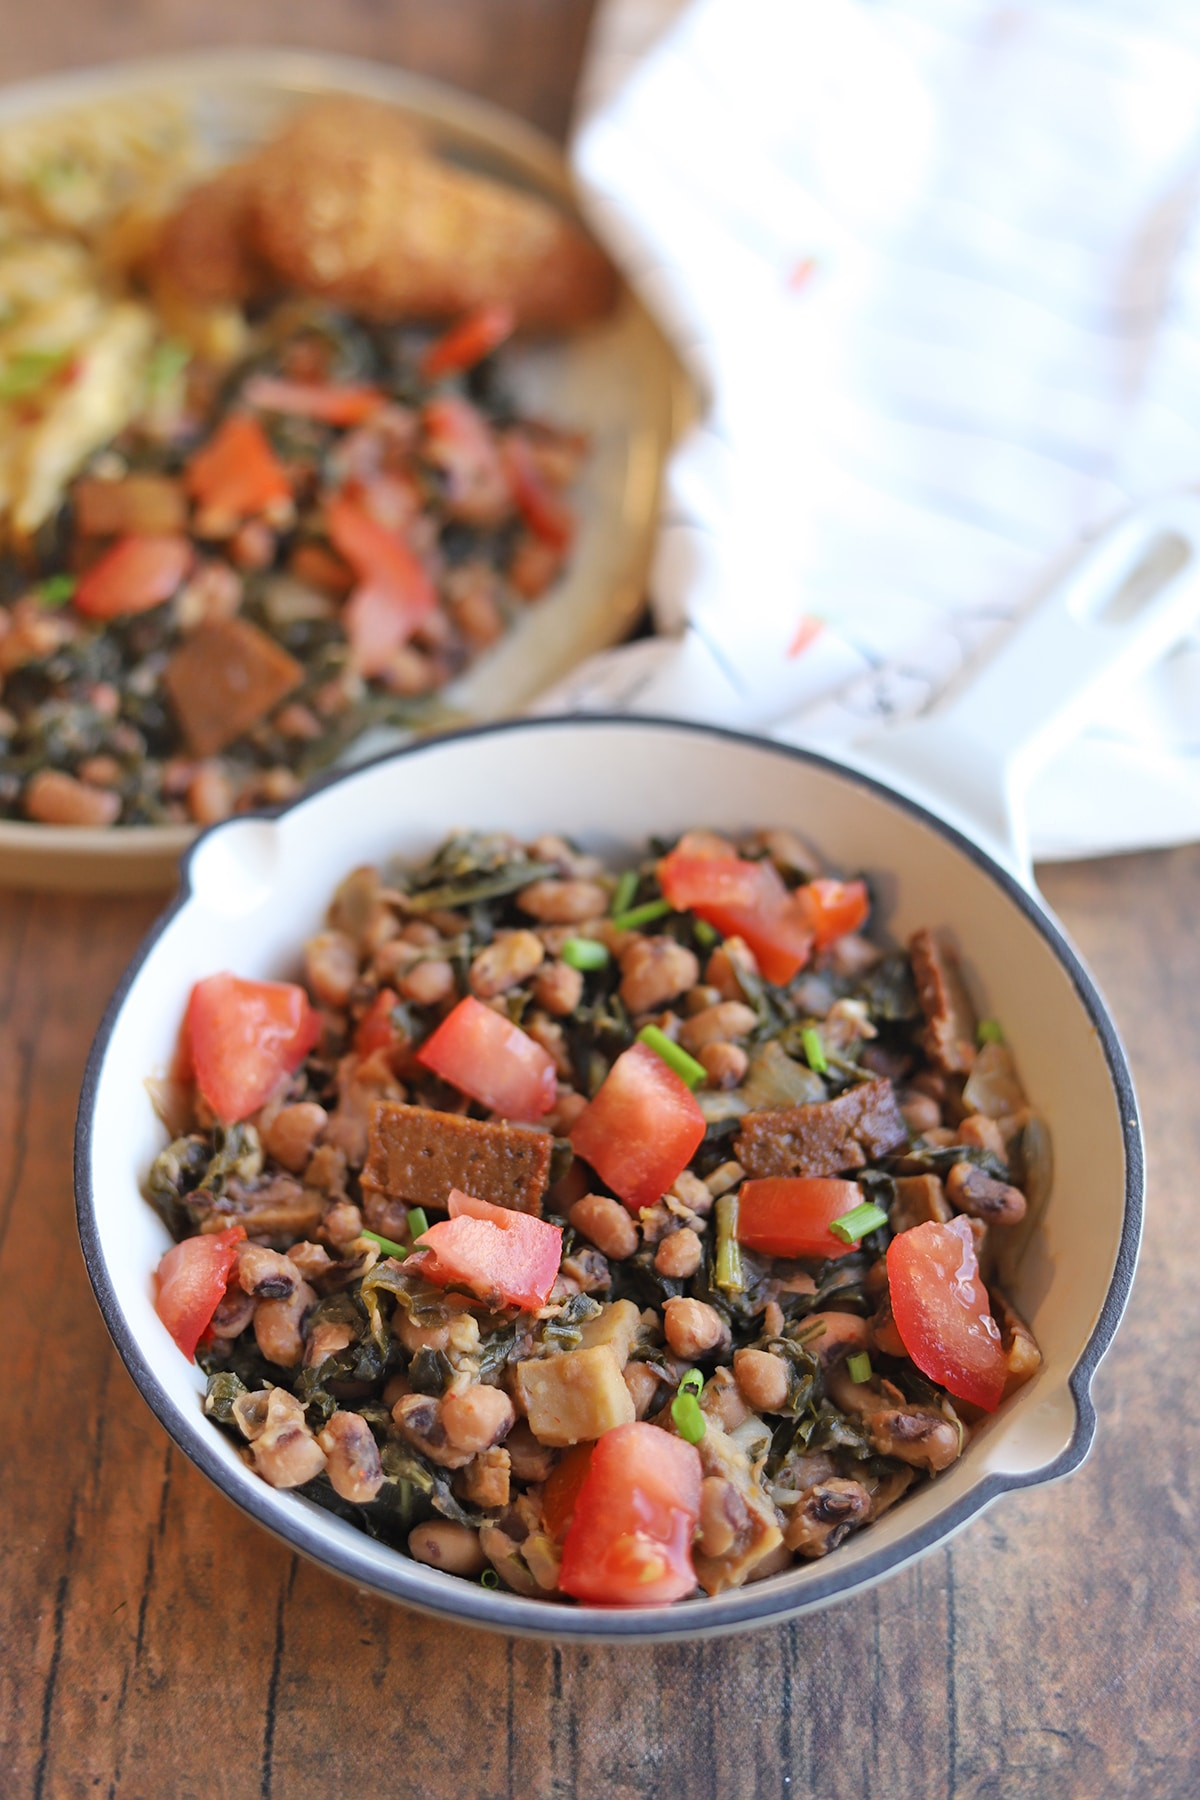 Overhead skillet with collard greens and black-eyed peas.